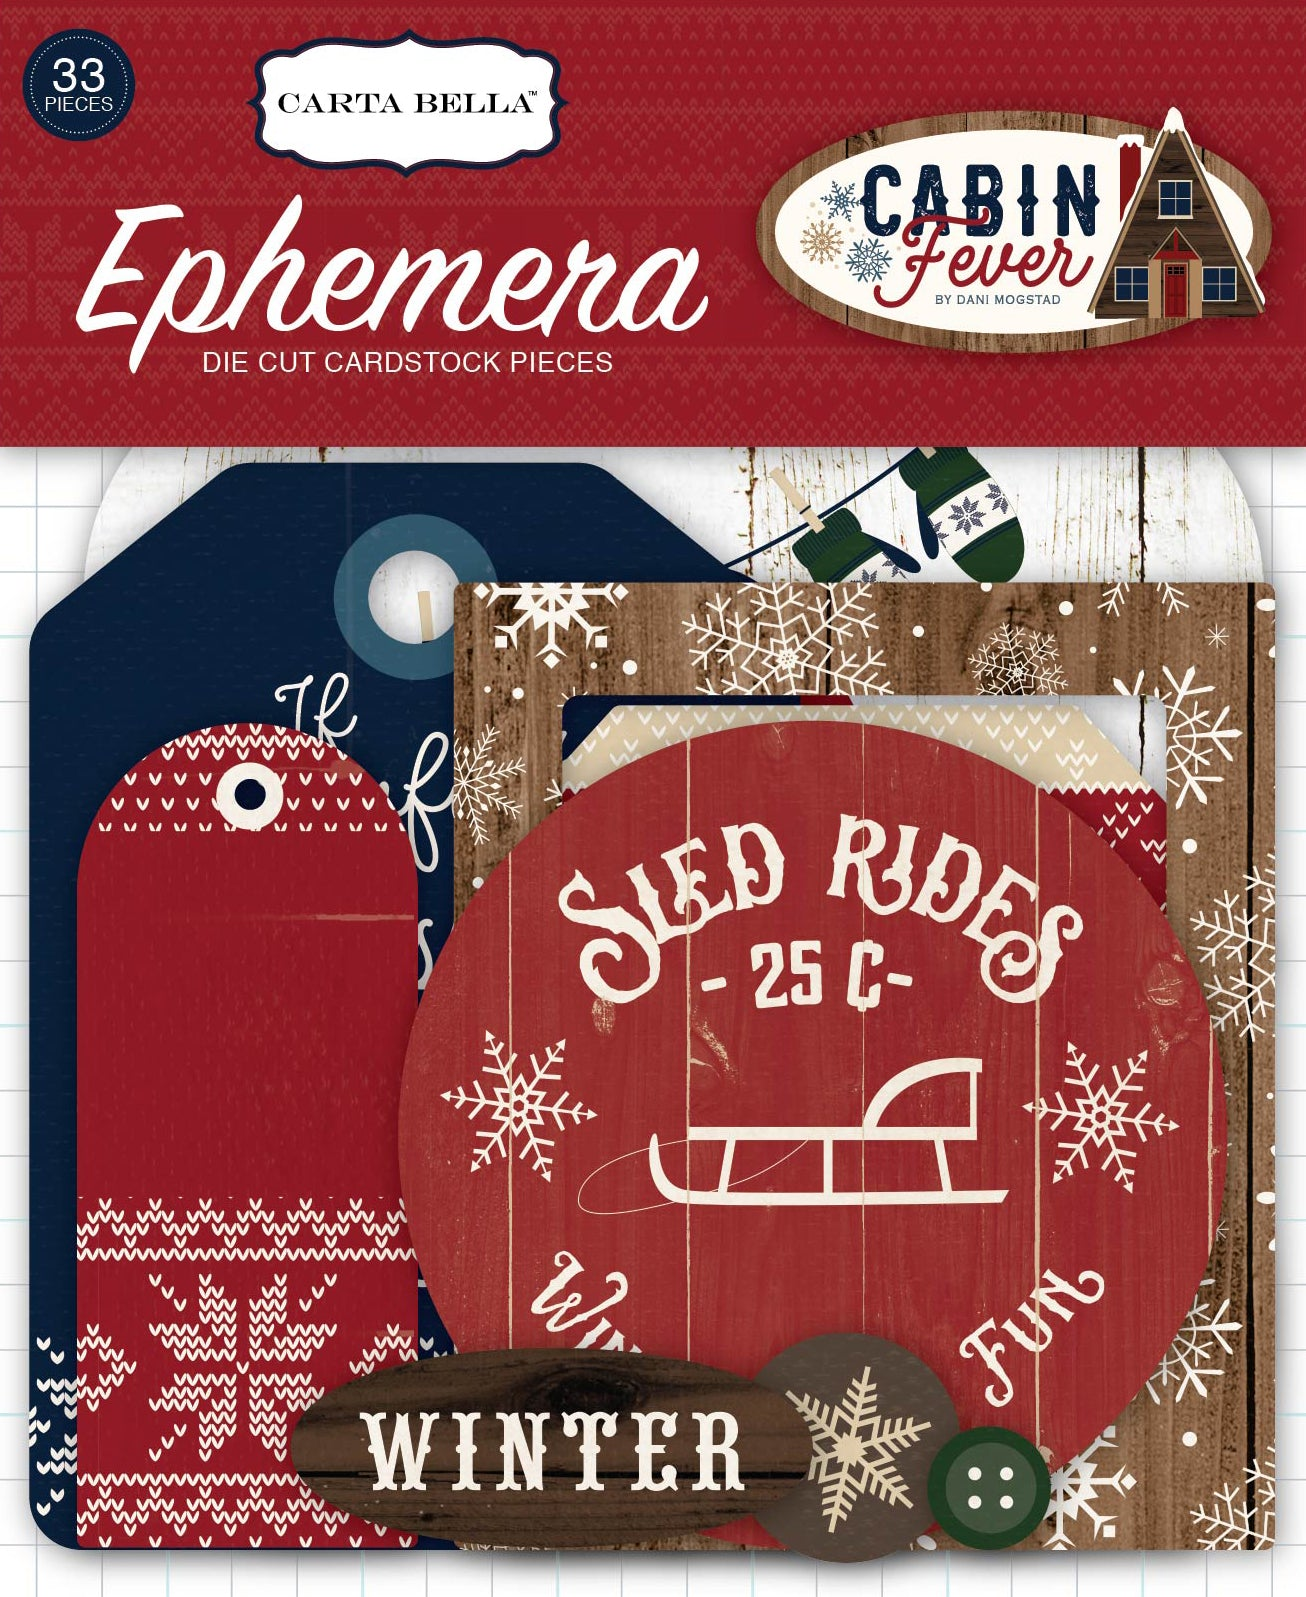 Carta Bella Cabin Fever Collection Ephemera Package